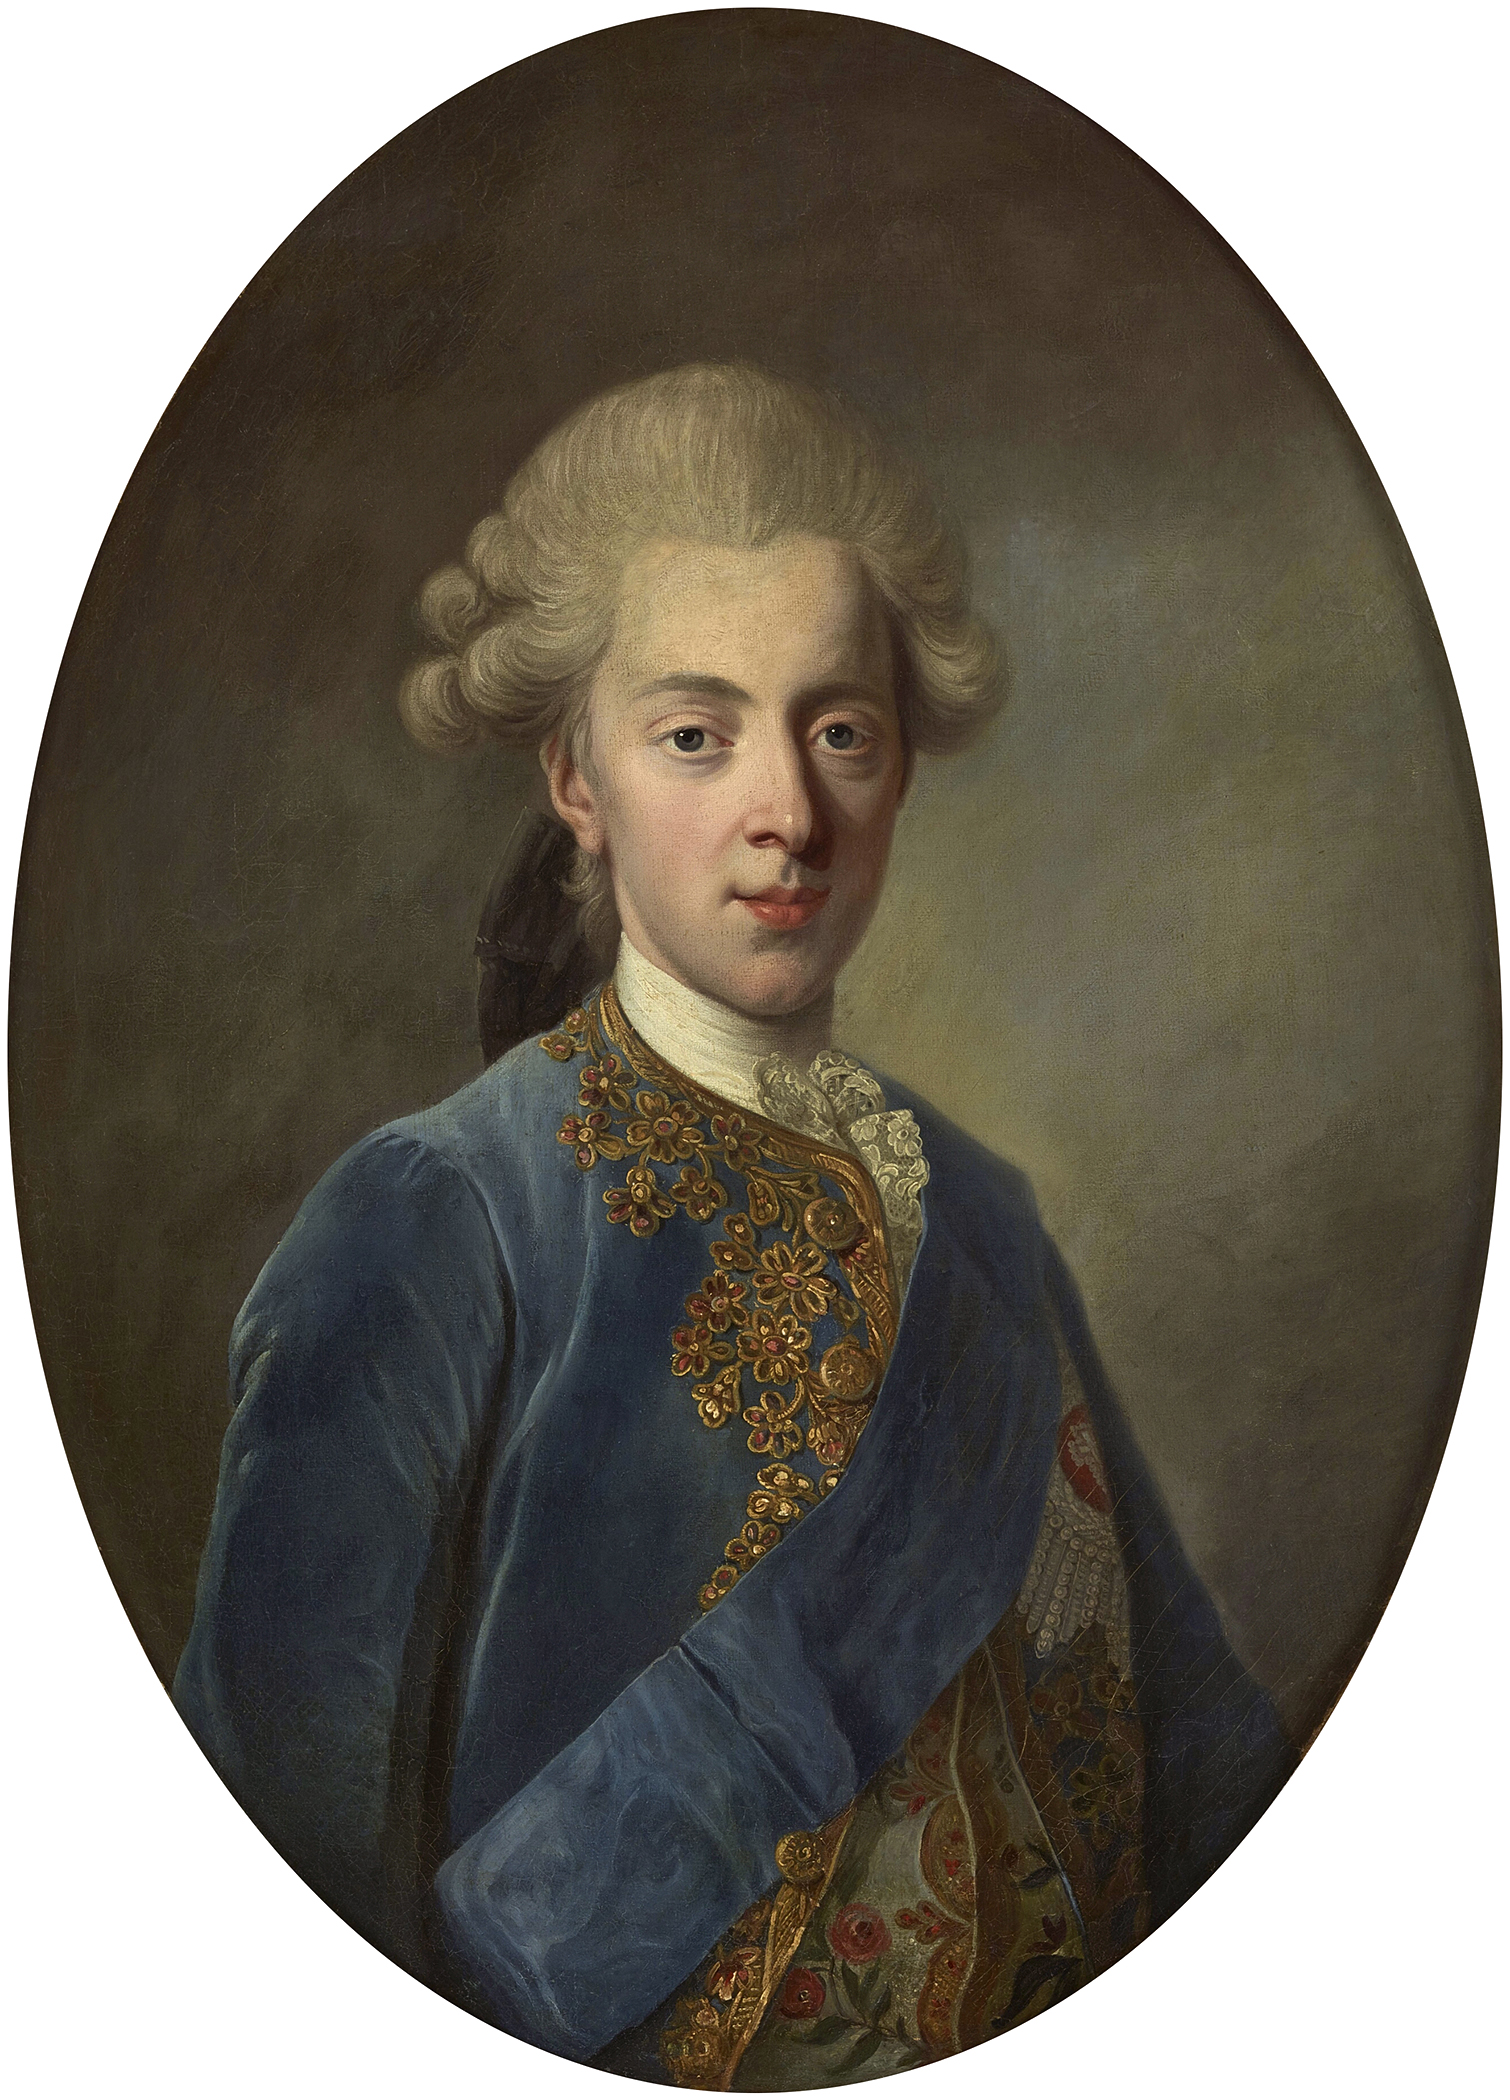 Portrait of Christian VII (1749-1808), King of Denmark and Norway, Duke of Schleswig, Duke of Holstein (1766-1808), Regency (1772-1808) | Portraits of Kings